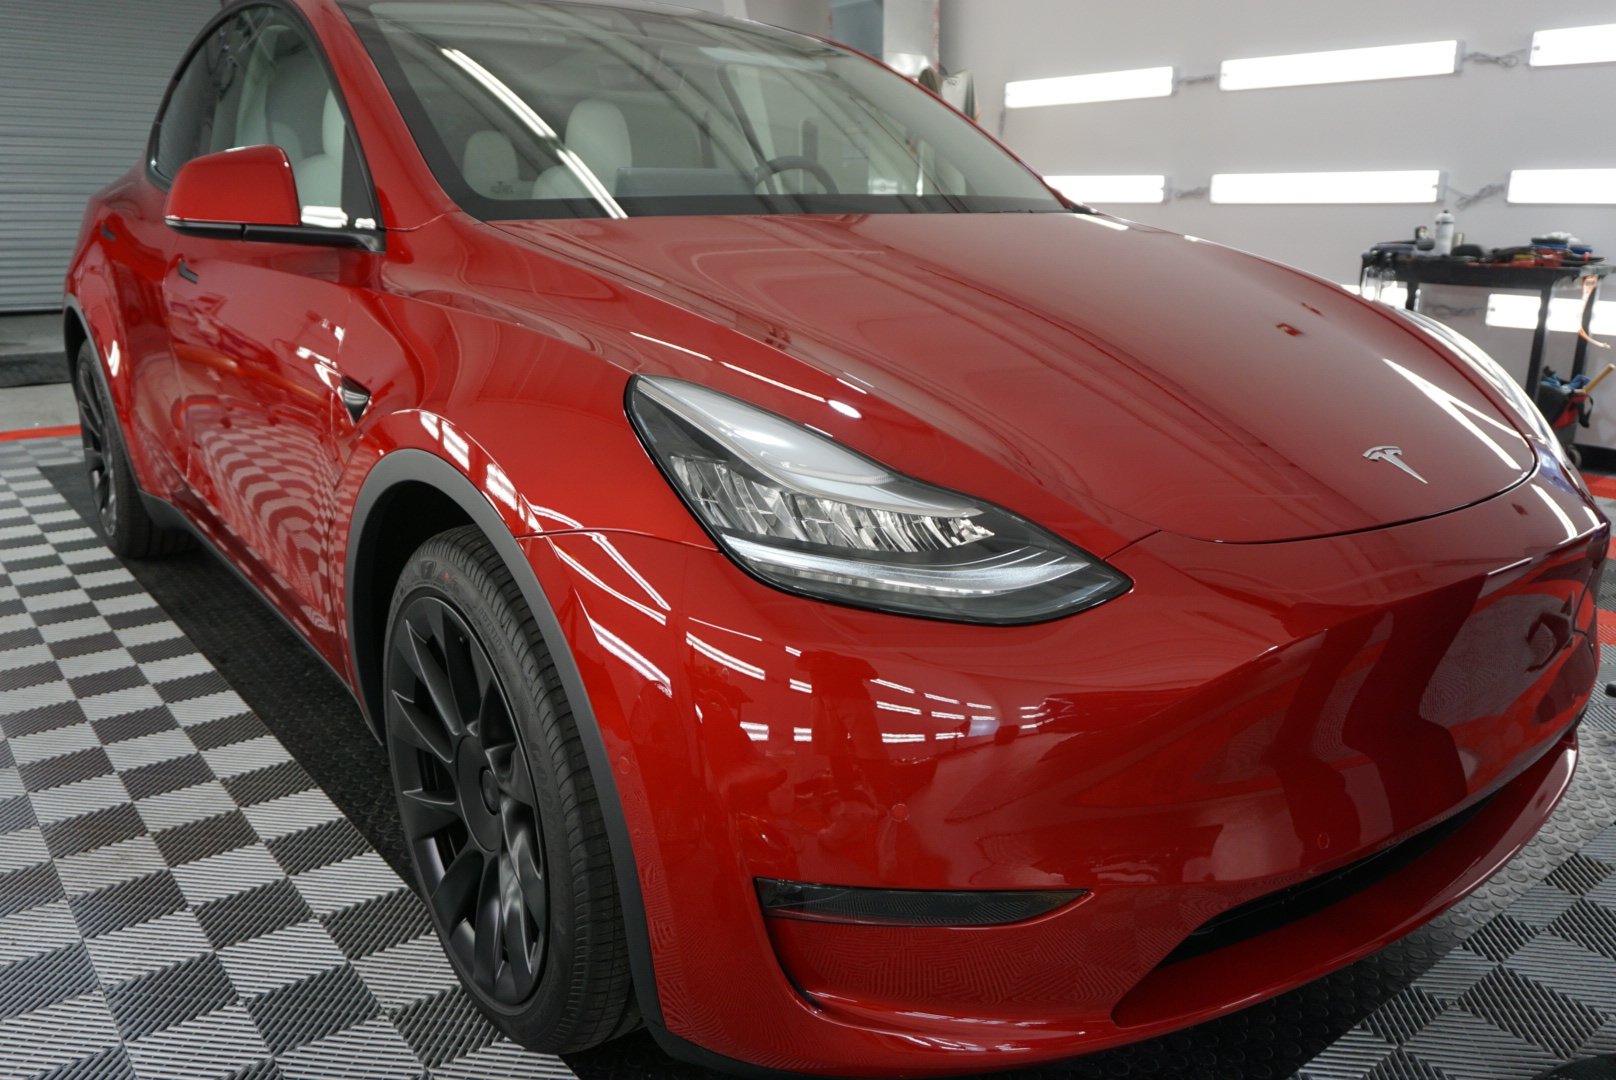 Photo of a Ceramic Coating of a 2020 Tesla Model X